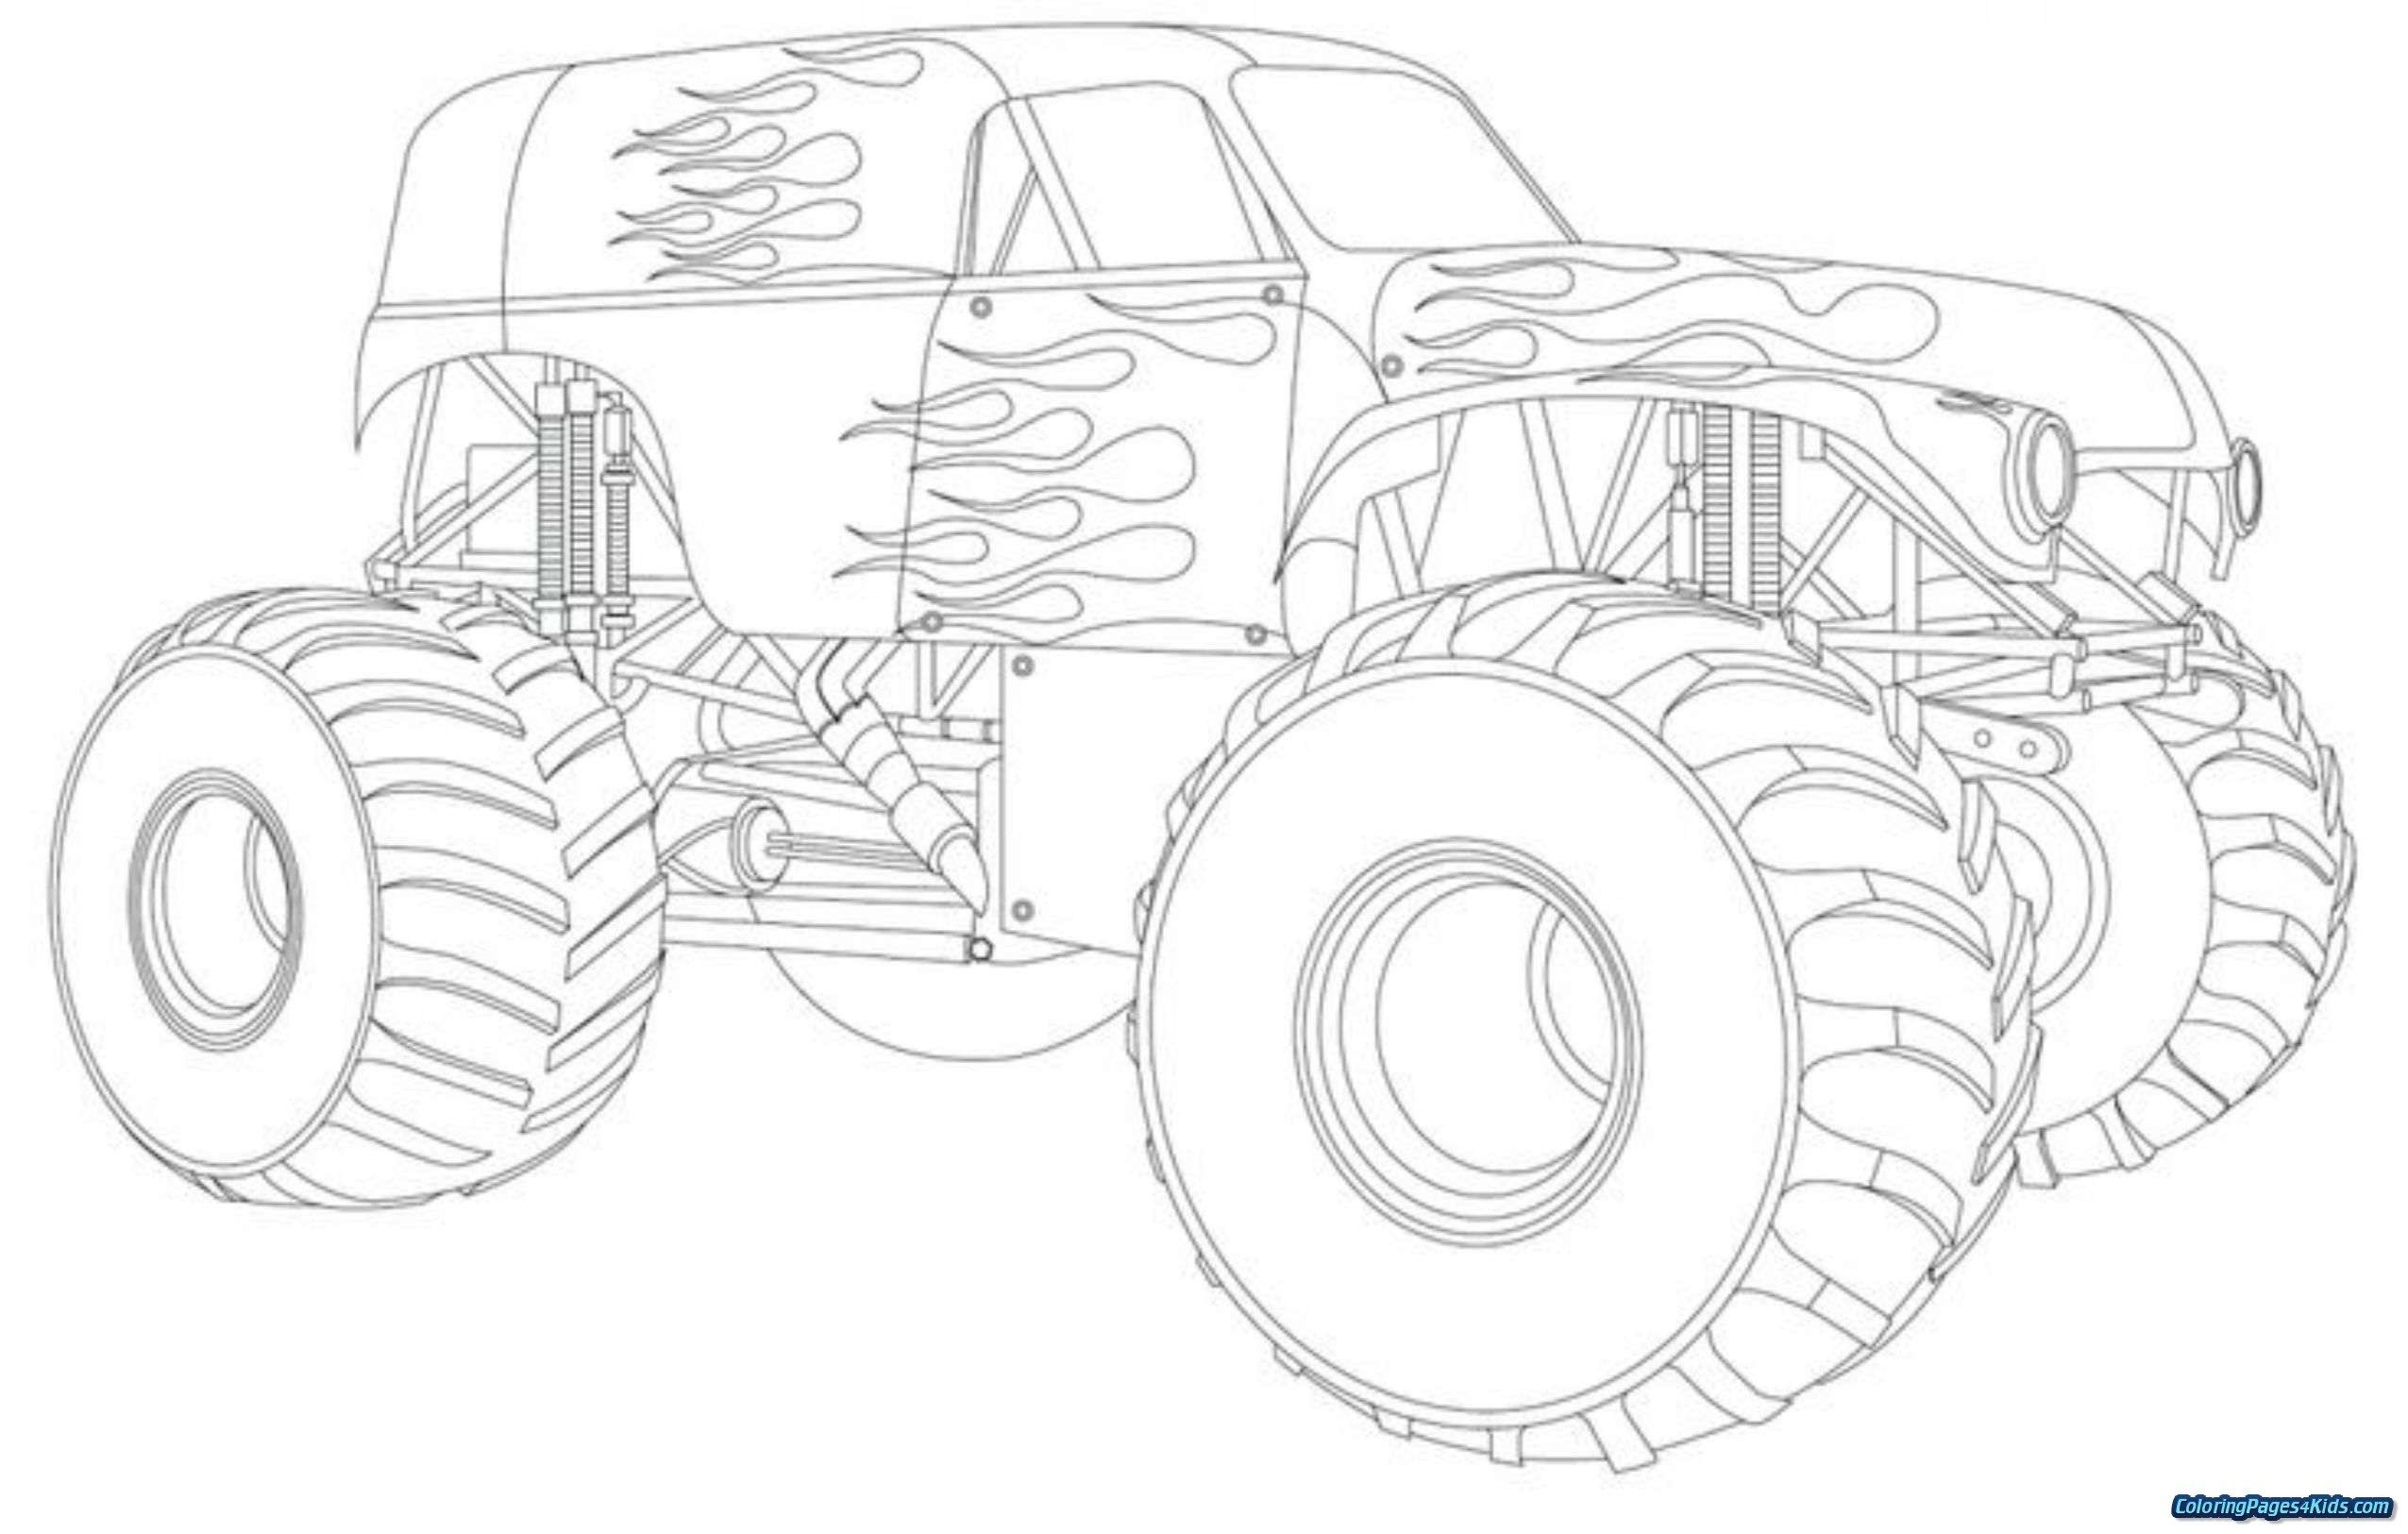 Wonderful Image of Trucks Coloring Pages - davemelillo.com